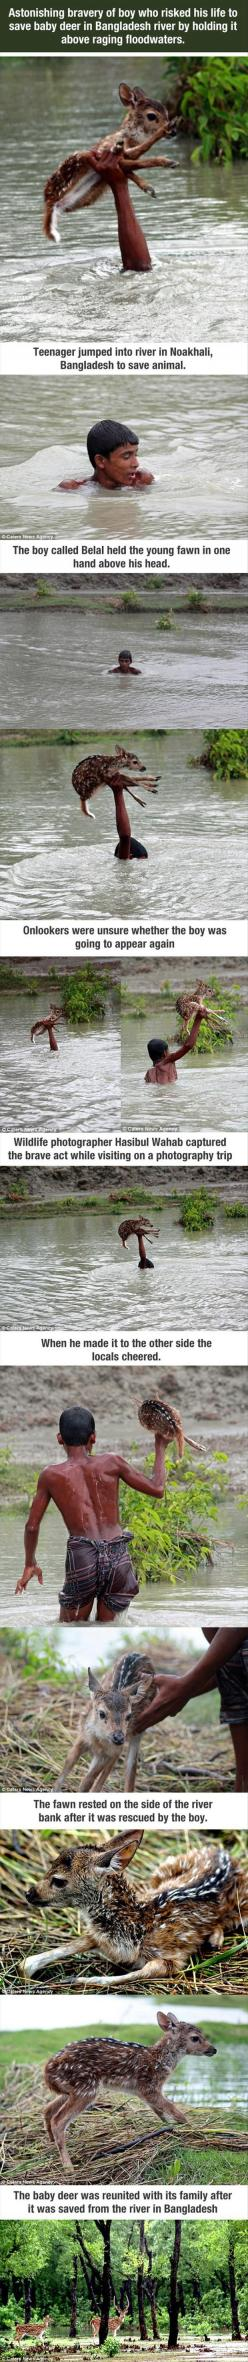 Amazing Act: Baby Deer, Restore Your Faith In Humanity, Hero, Sweet, Faith In Humanity Restored, Faith Restored, Amazing People, Boy, Animal